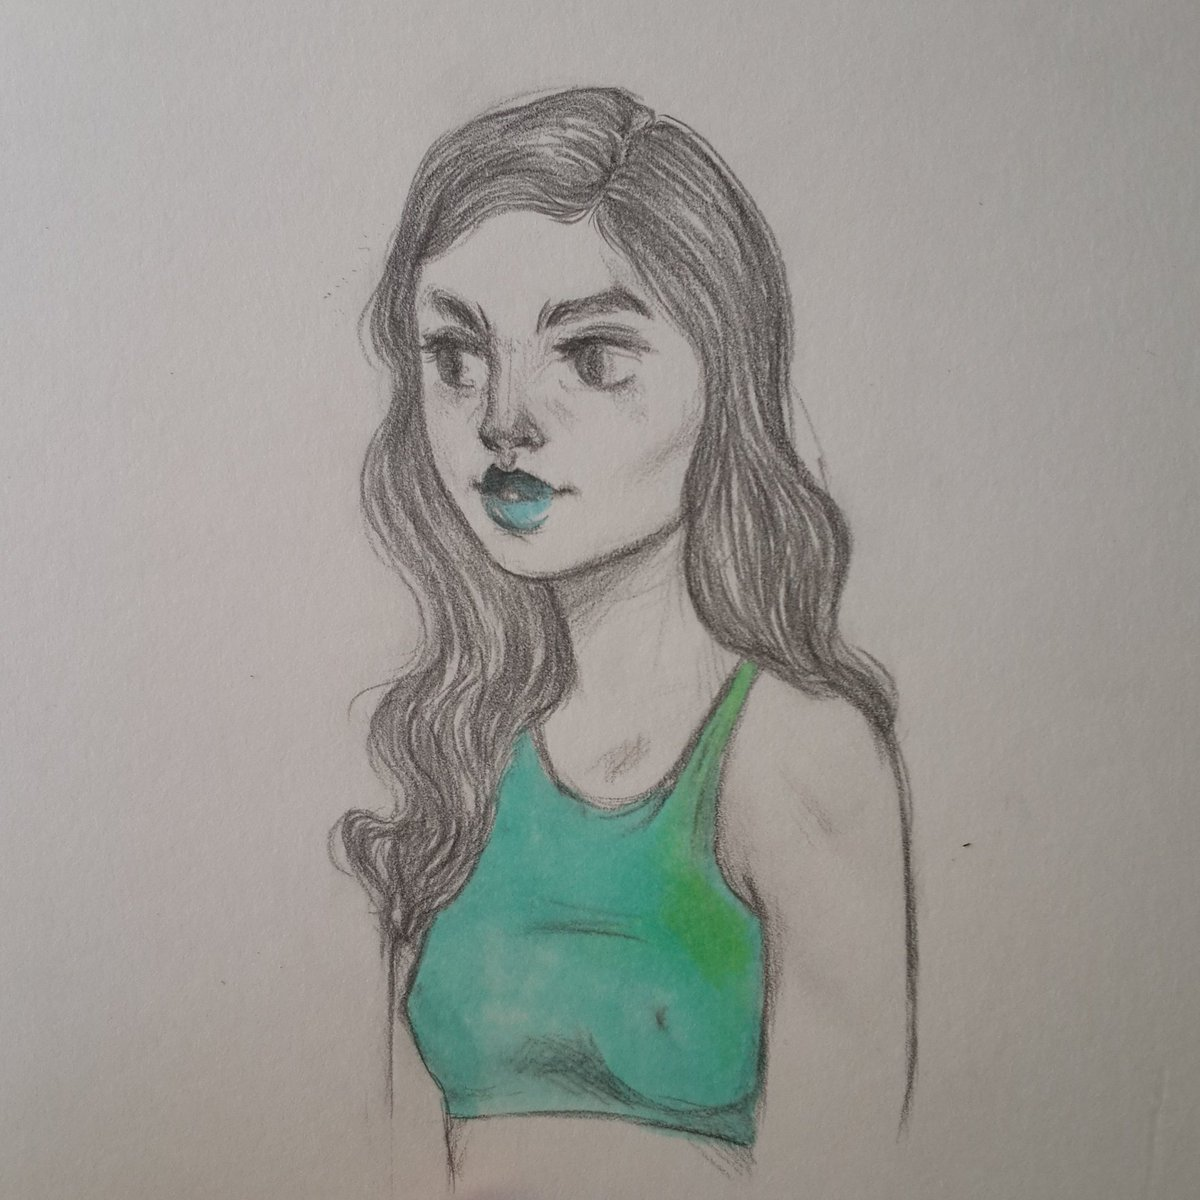 Just a #sketch .  #art #copic #pencil #artoftheday<br>http://pic.twitter.com/S41gIYFRyx